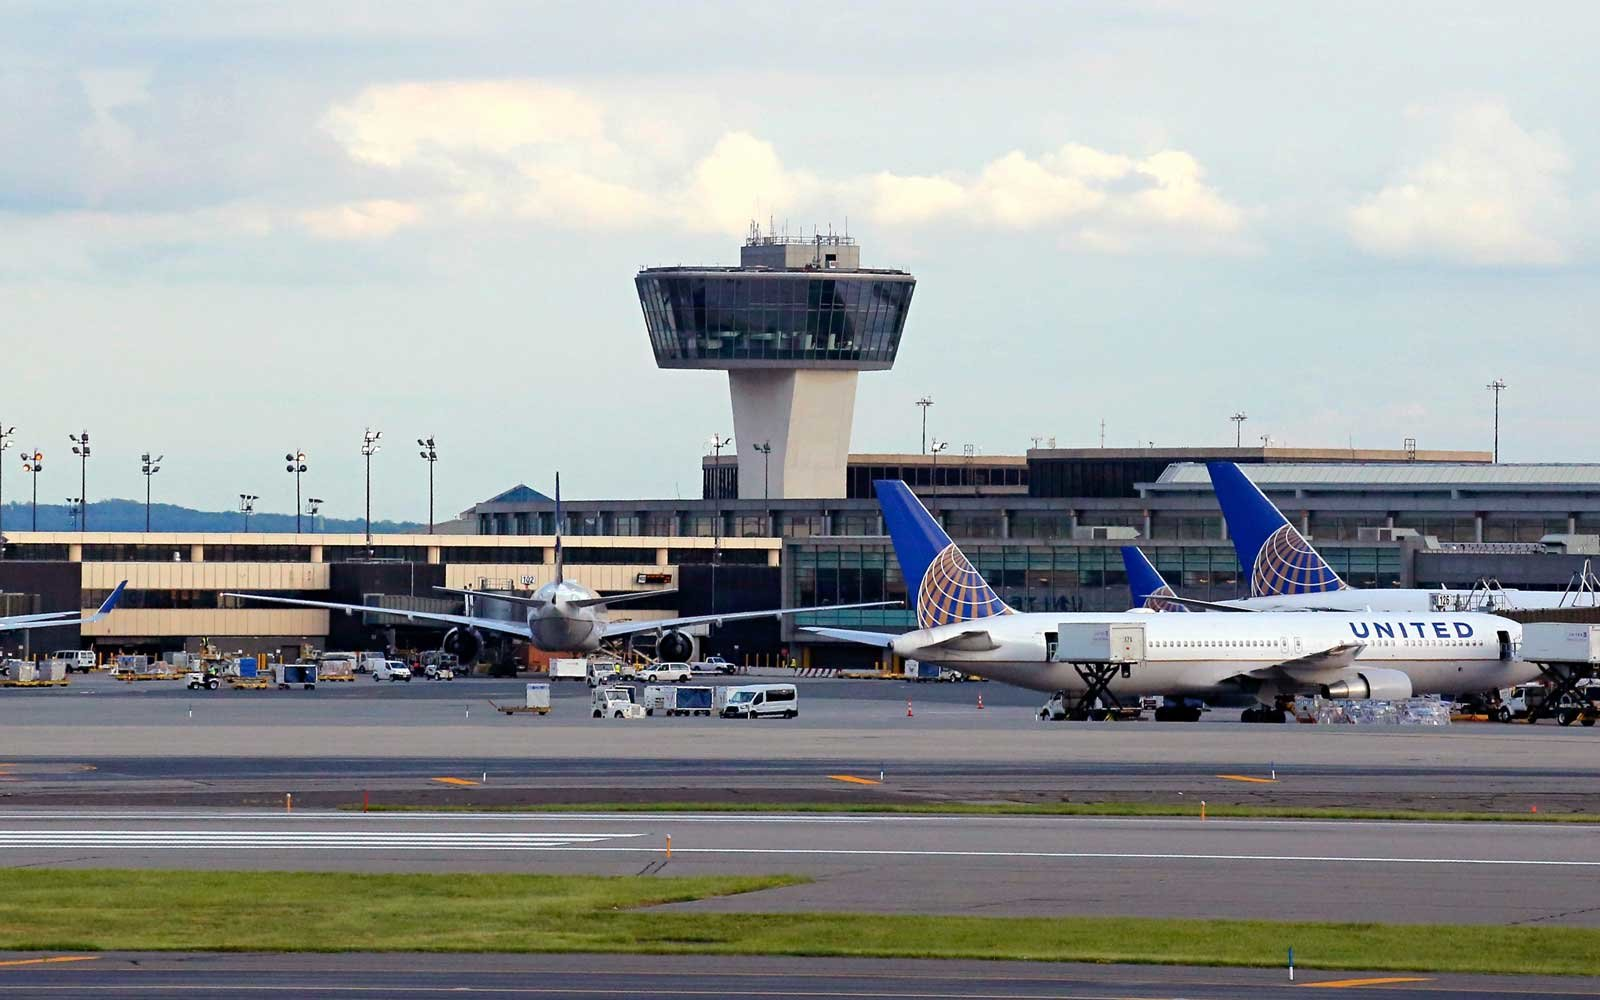 Health officials warn of measles exposure at Newark airport